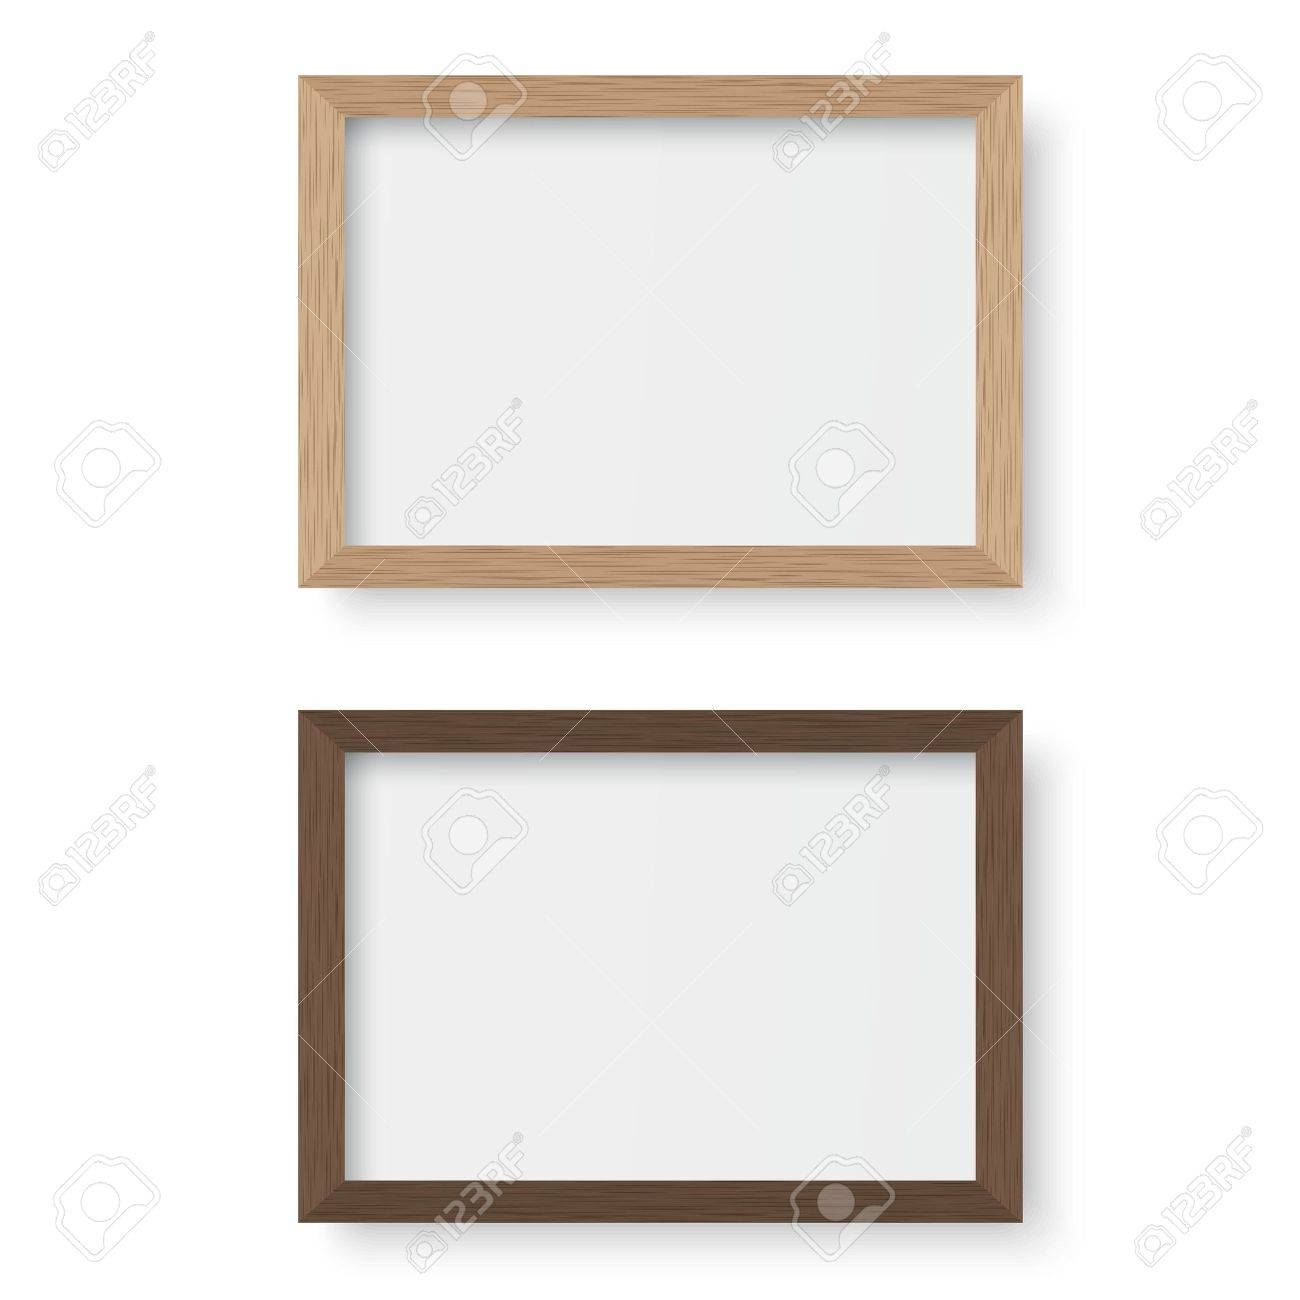 Vector wooden picture frame - 55049264